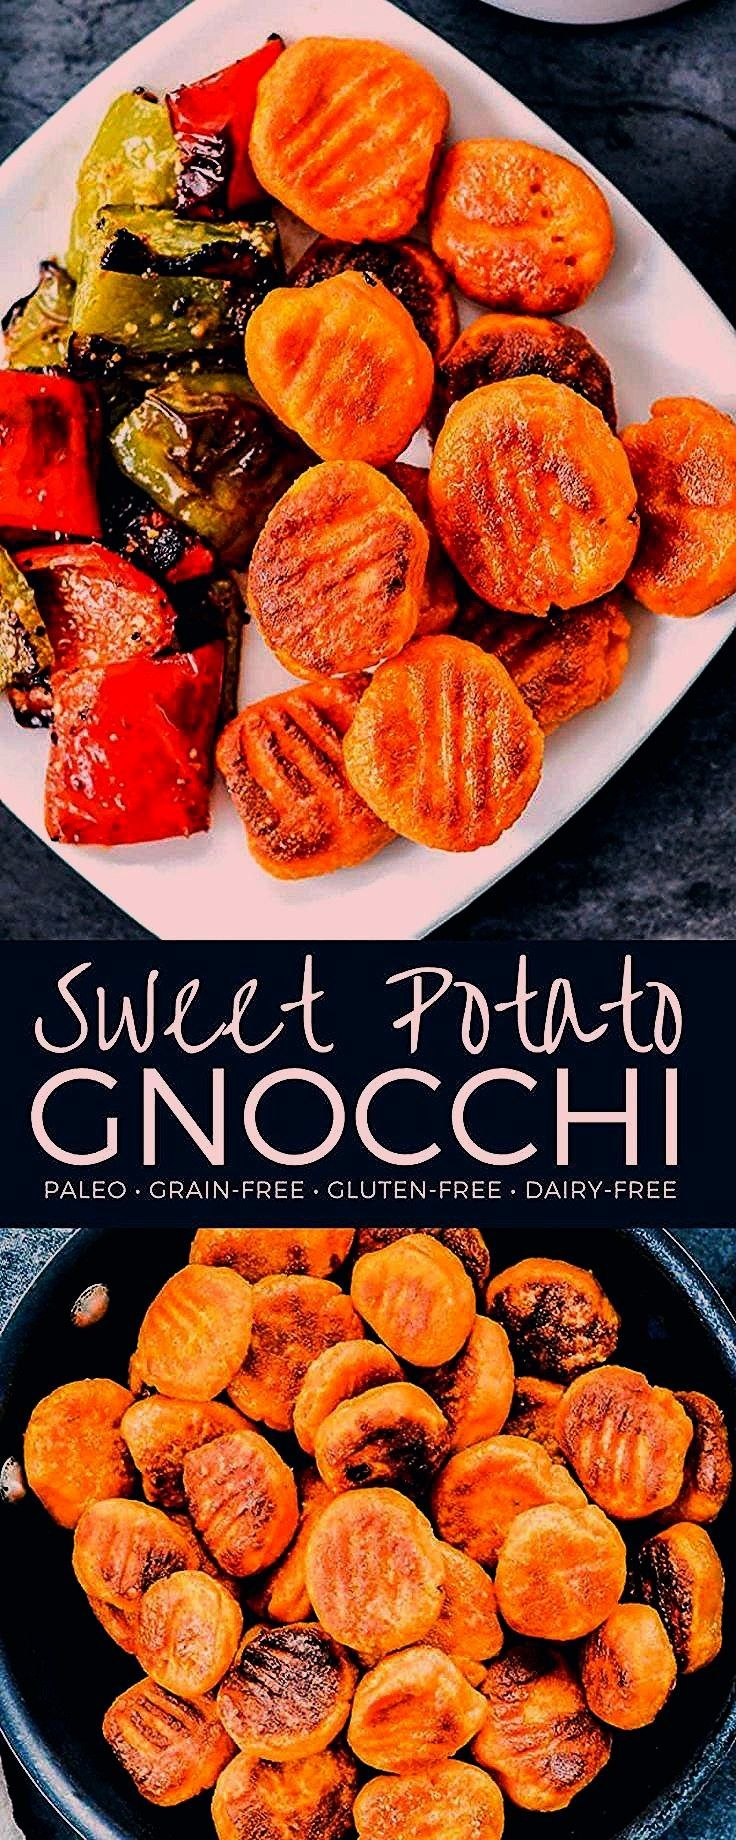 Potato Gnocchi Recipe Made with only 6 ingredients this delicious homemade pasta is glutenfree grainfree  dairyfree Its boiled then browned in olive oil for an extra spec...